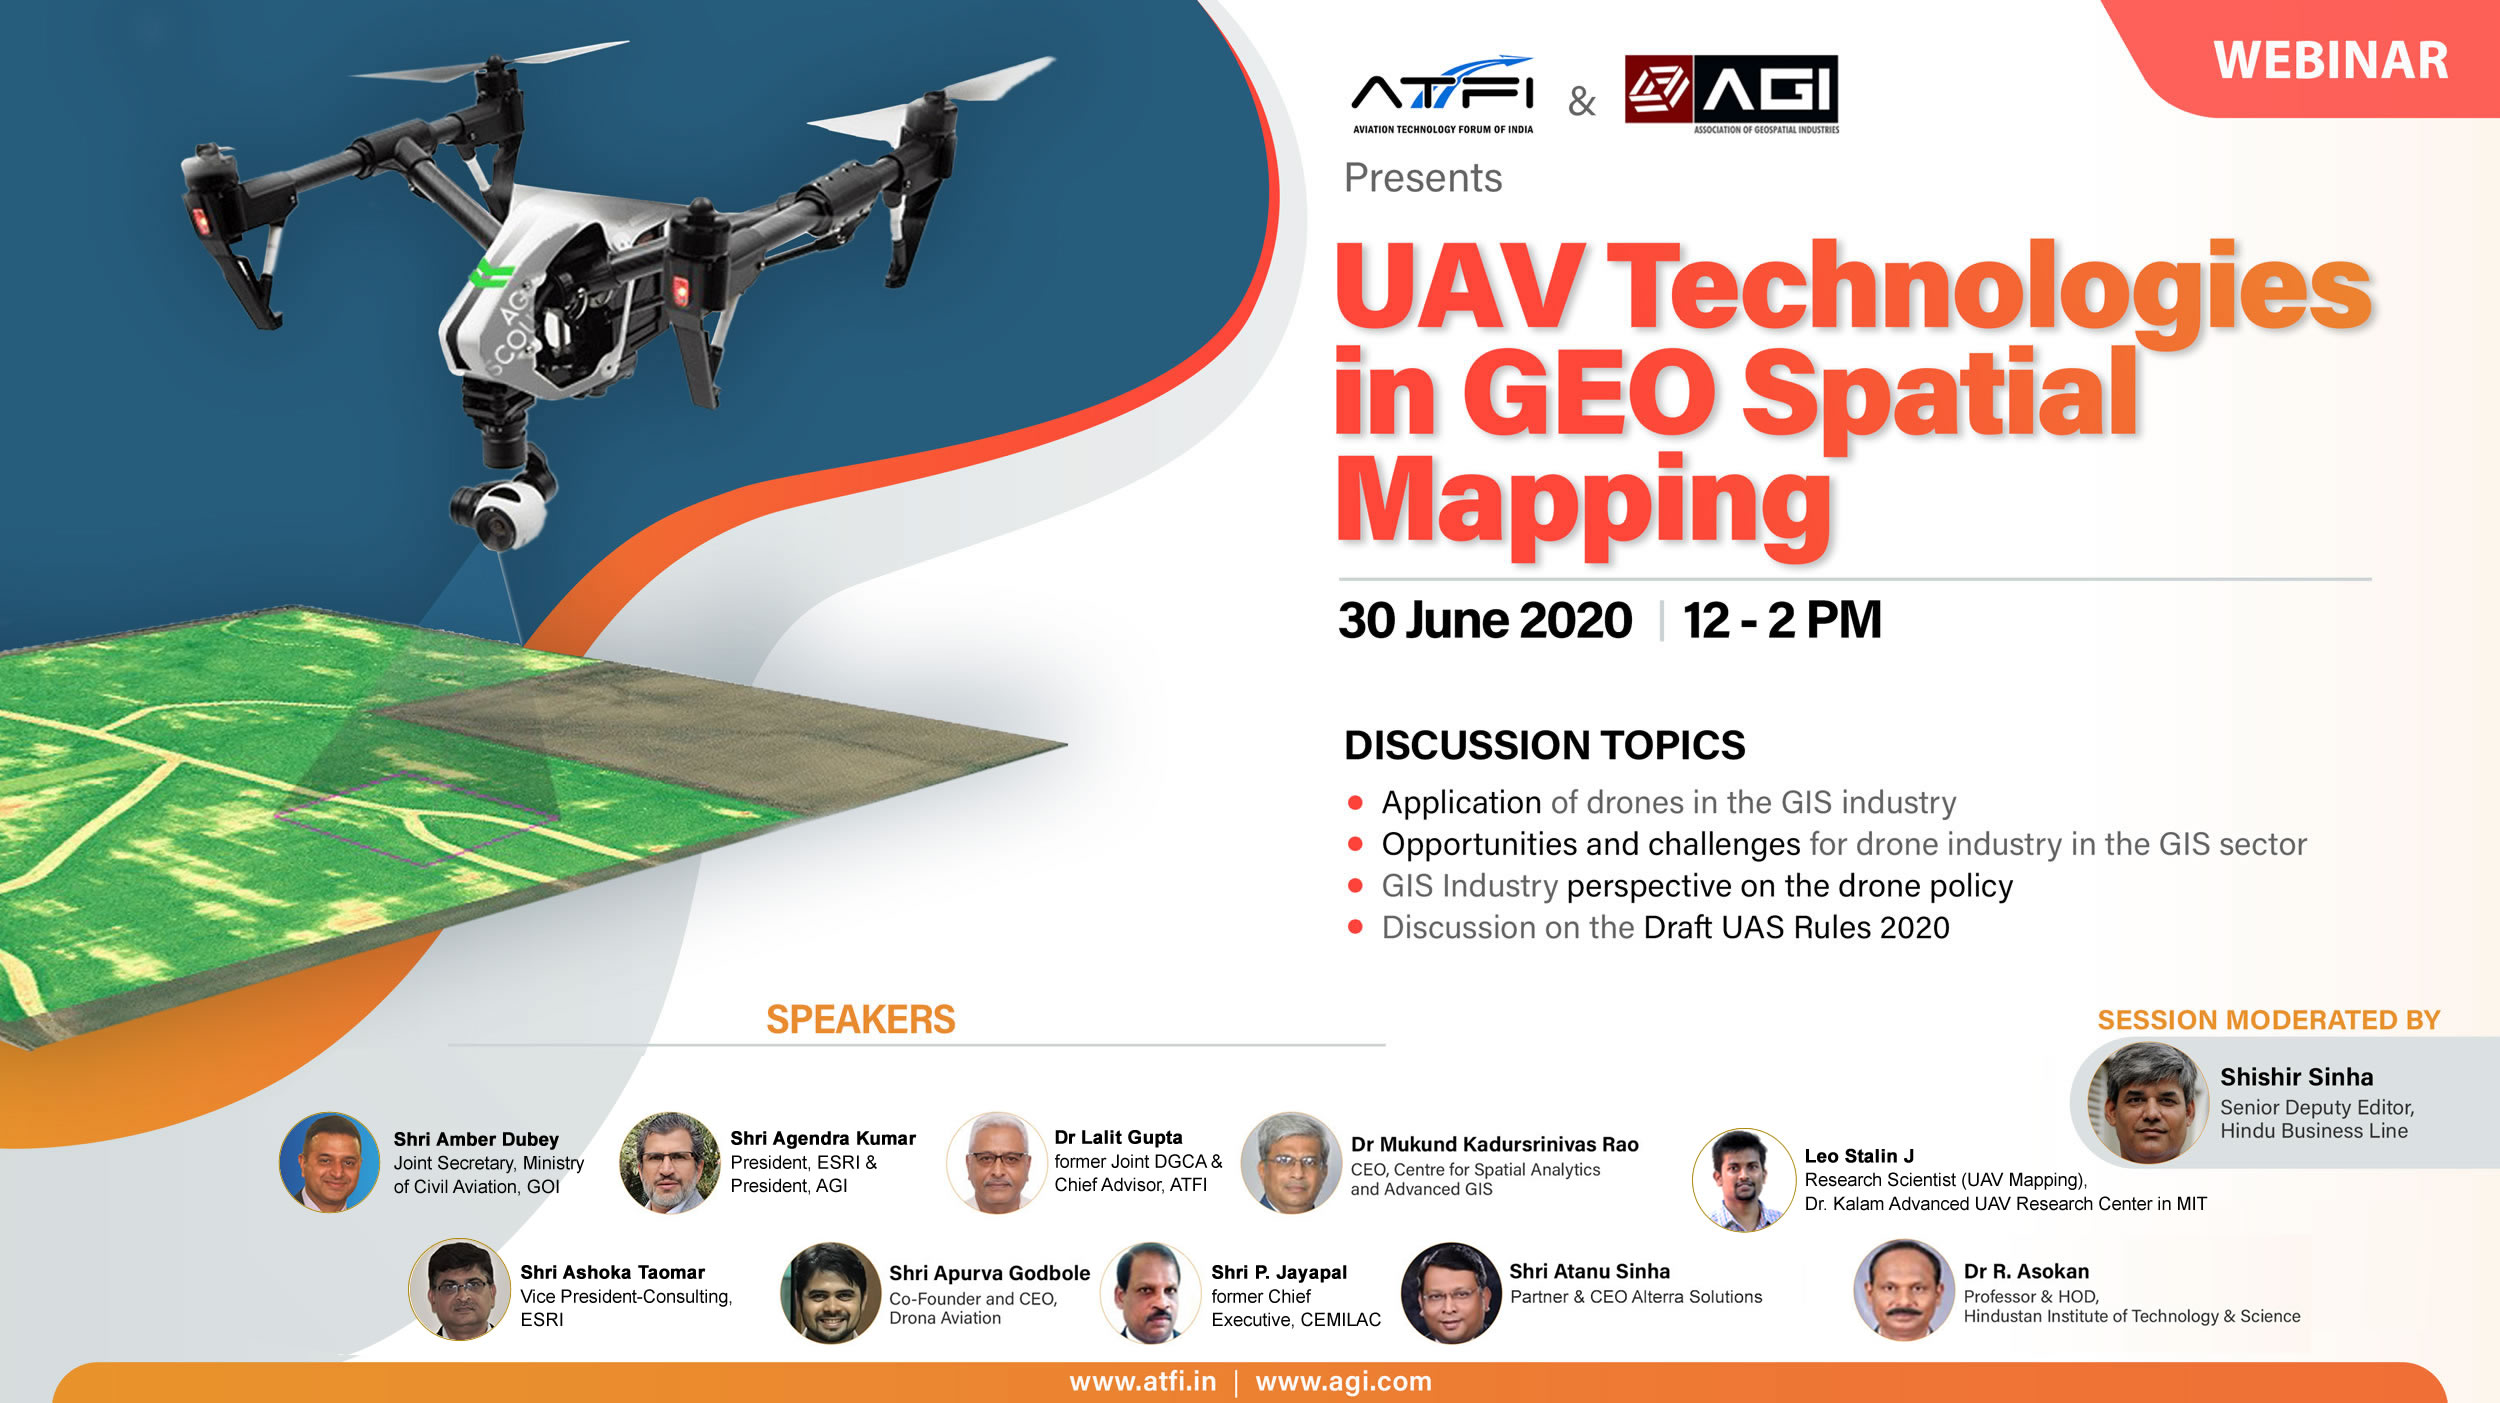 UAV Technologies in GEO Spatial Mapping